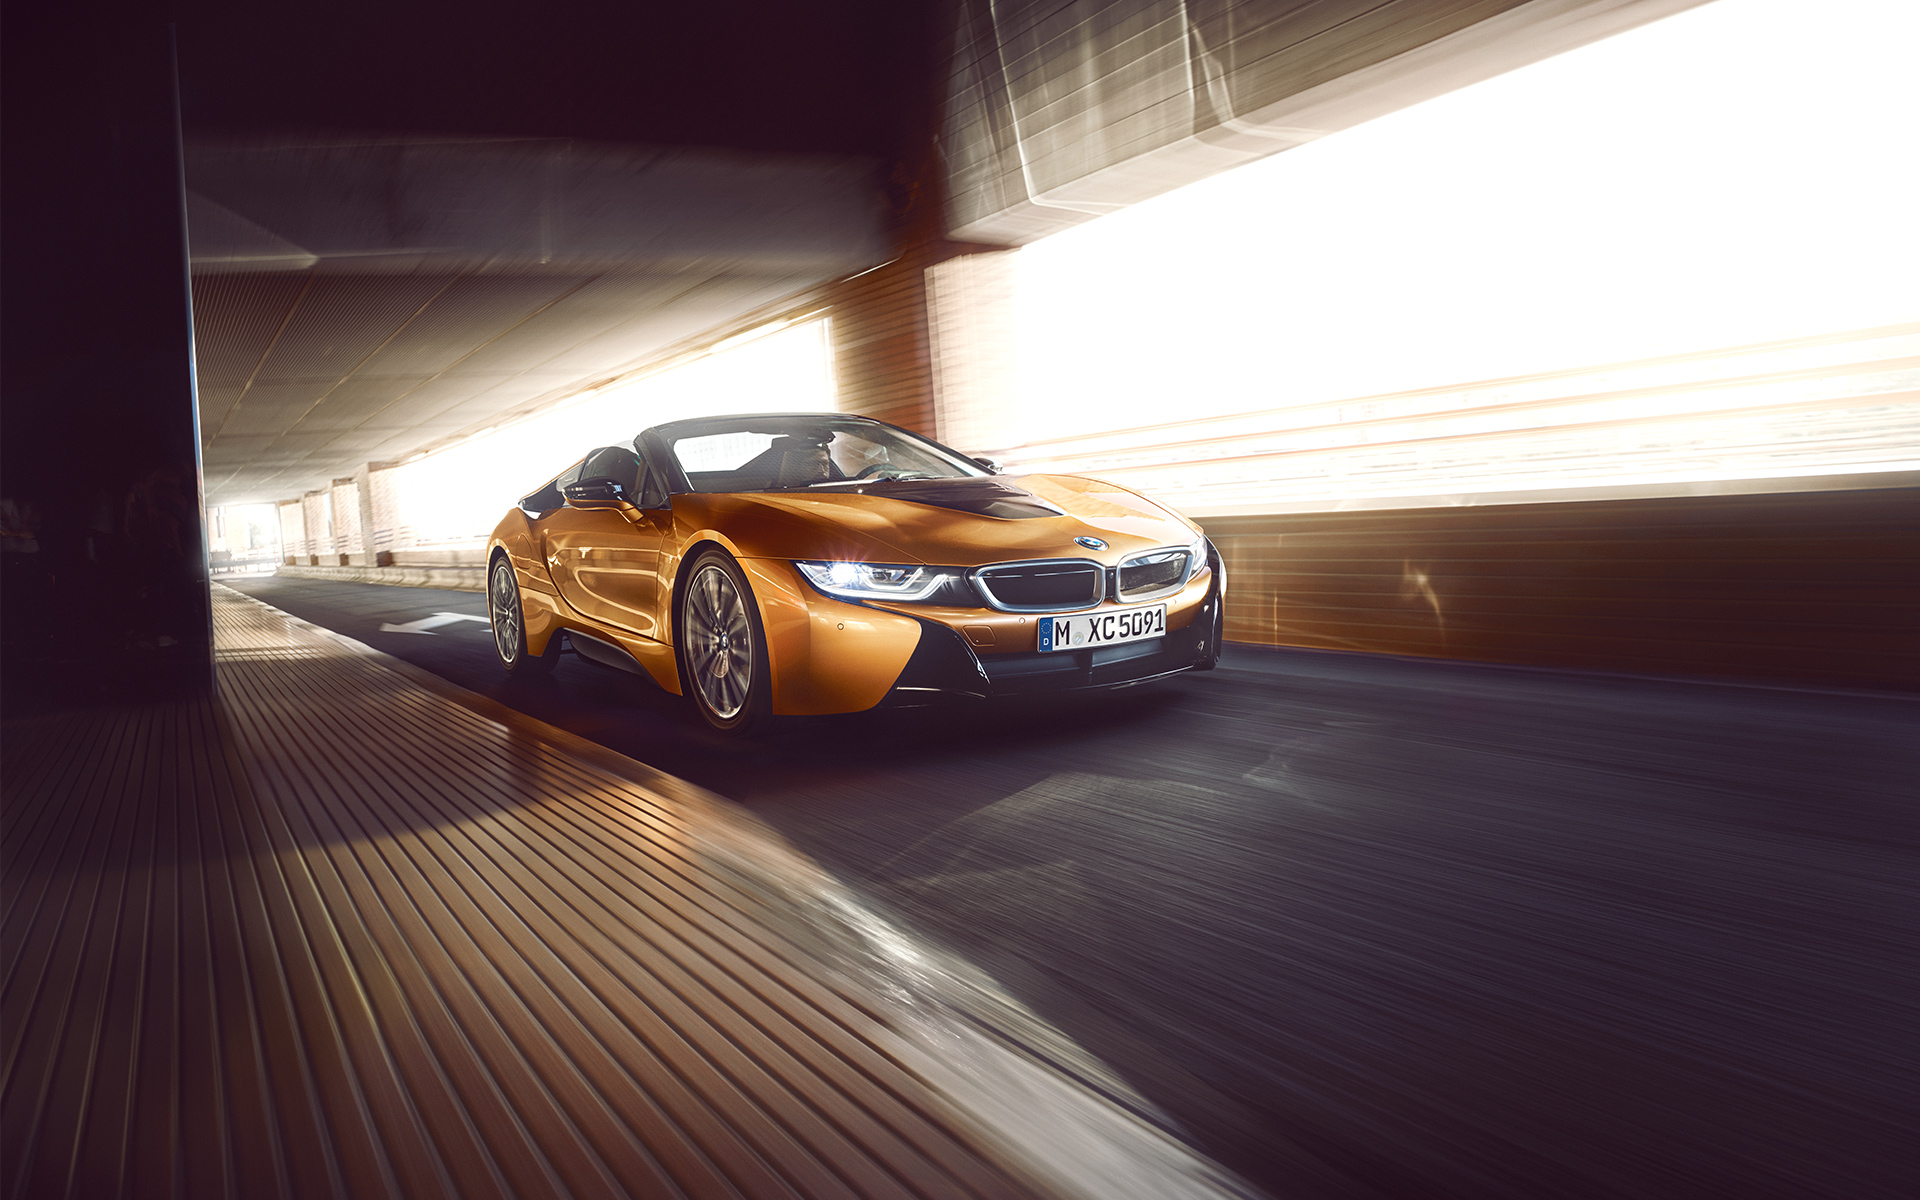 BMW i8 Roadster in Fahrt: Frontansicht